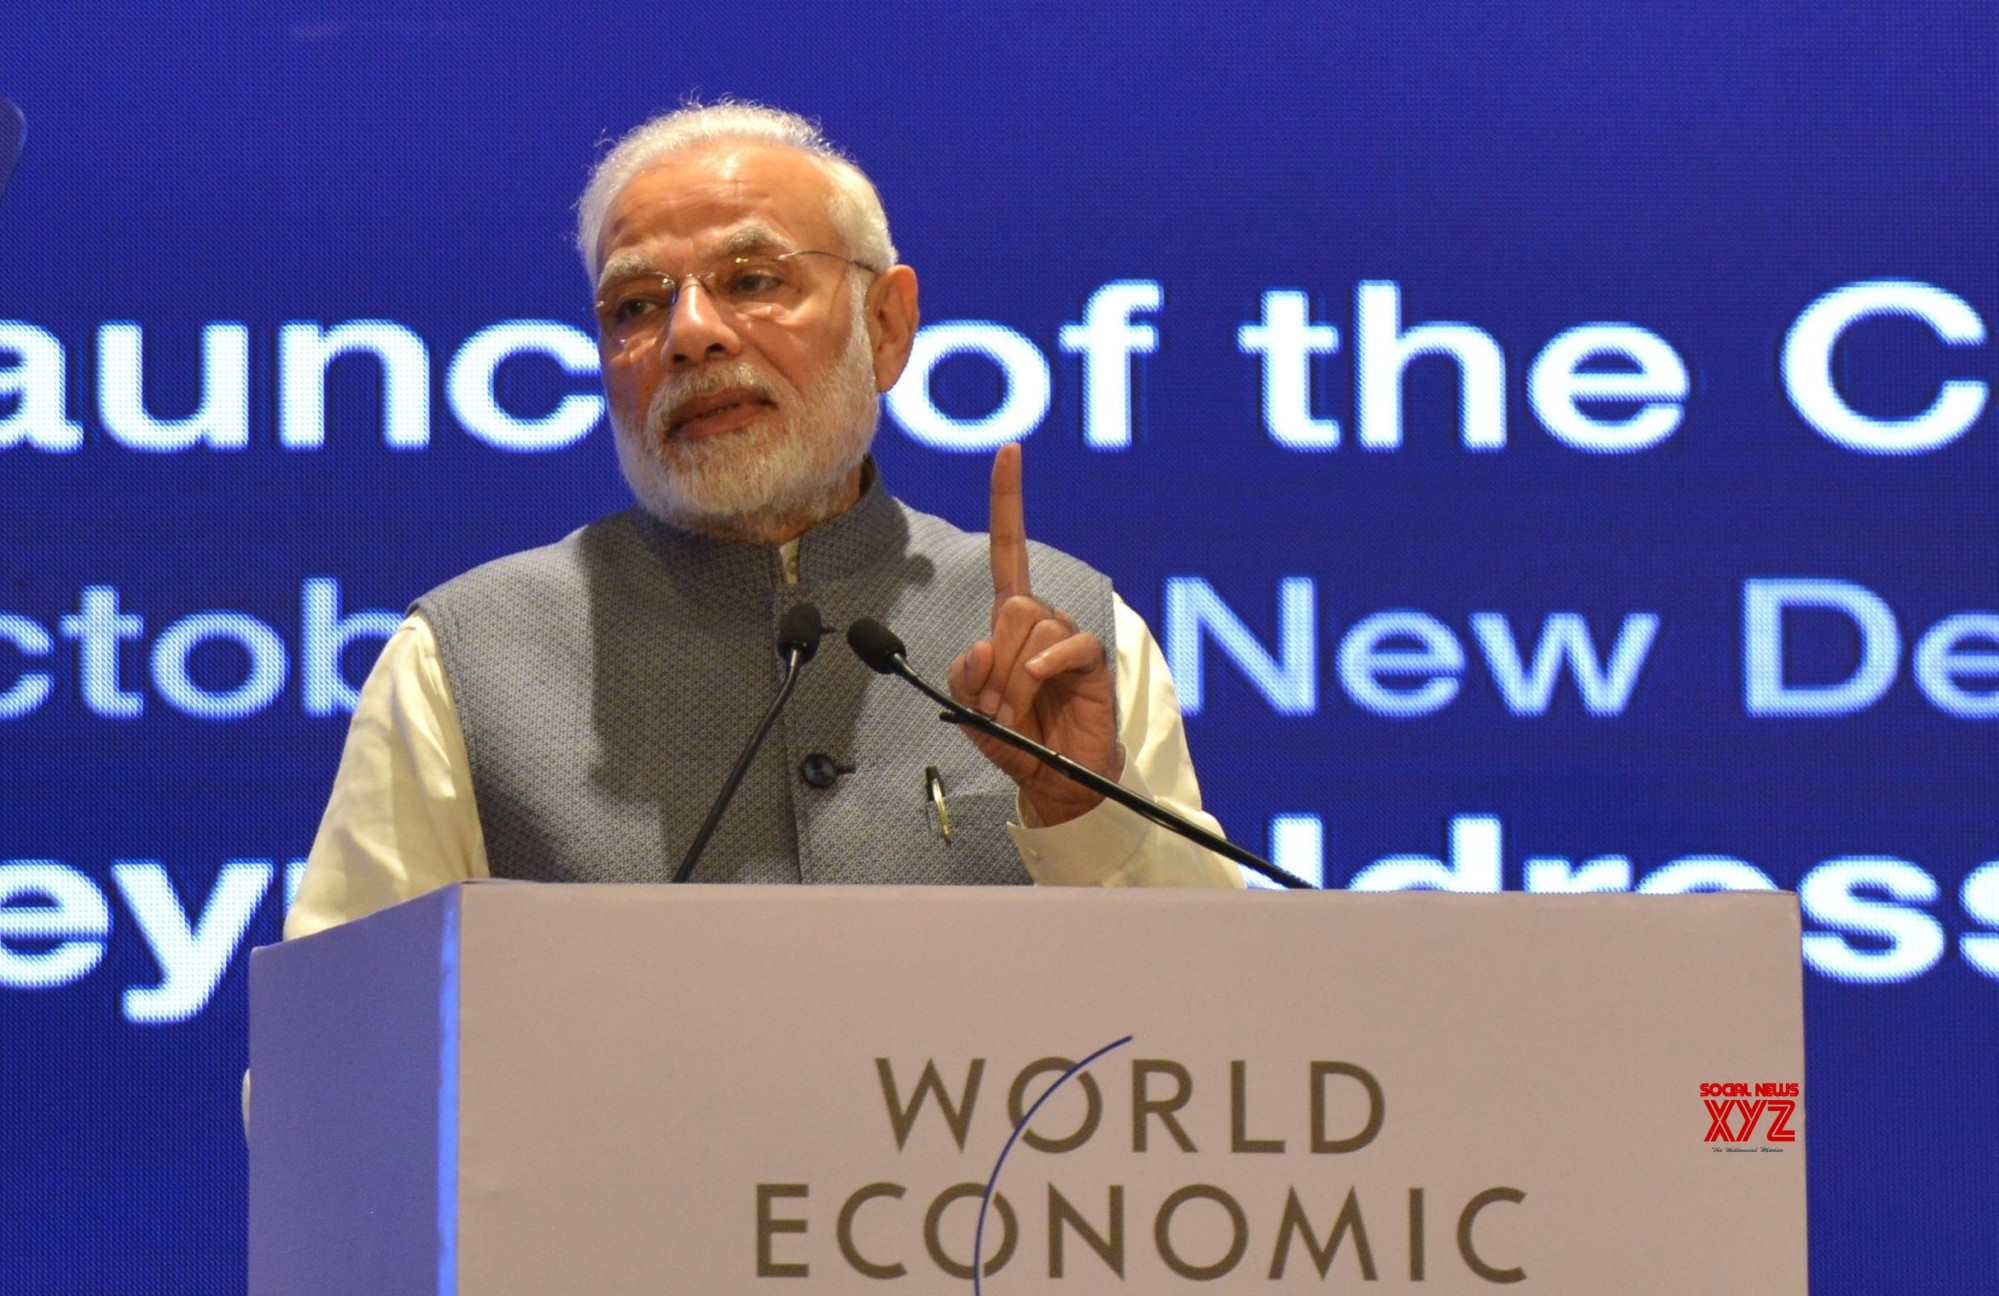 'Industry 4.0' to reduce expenditure on healthcare: Modi